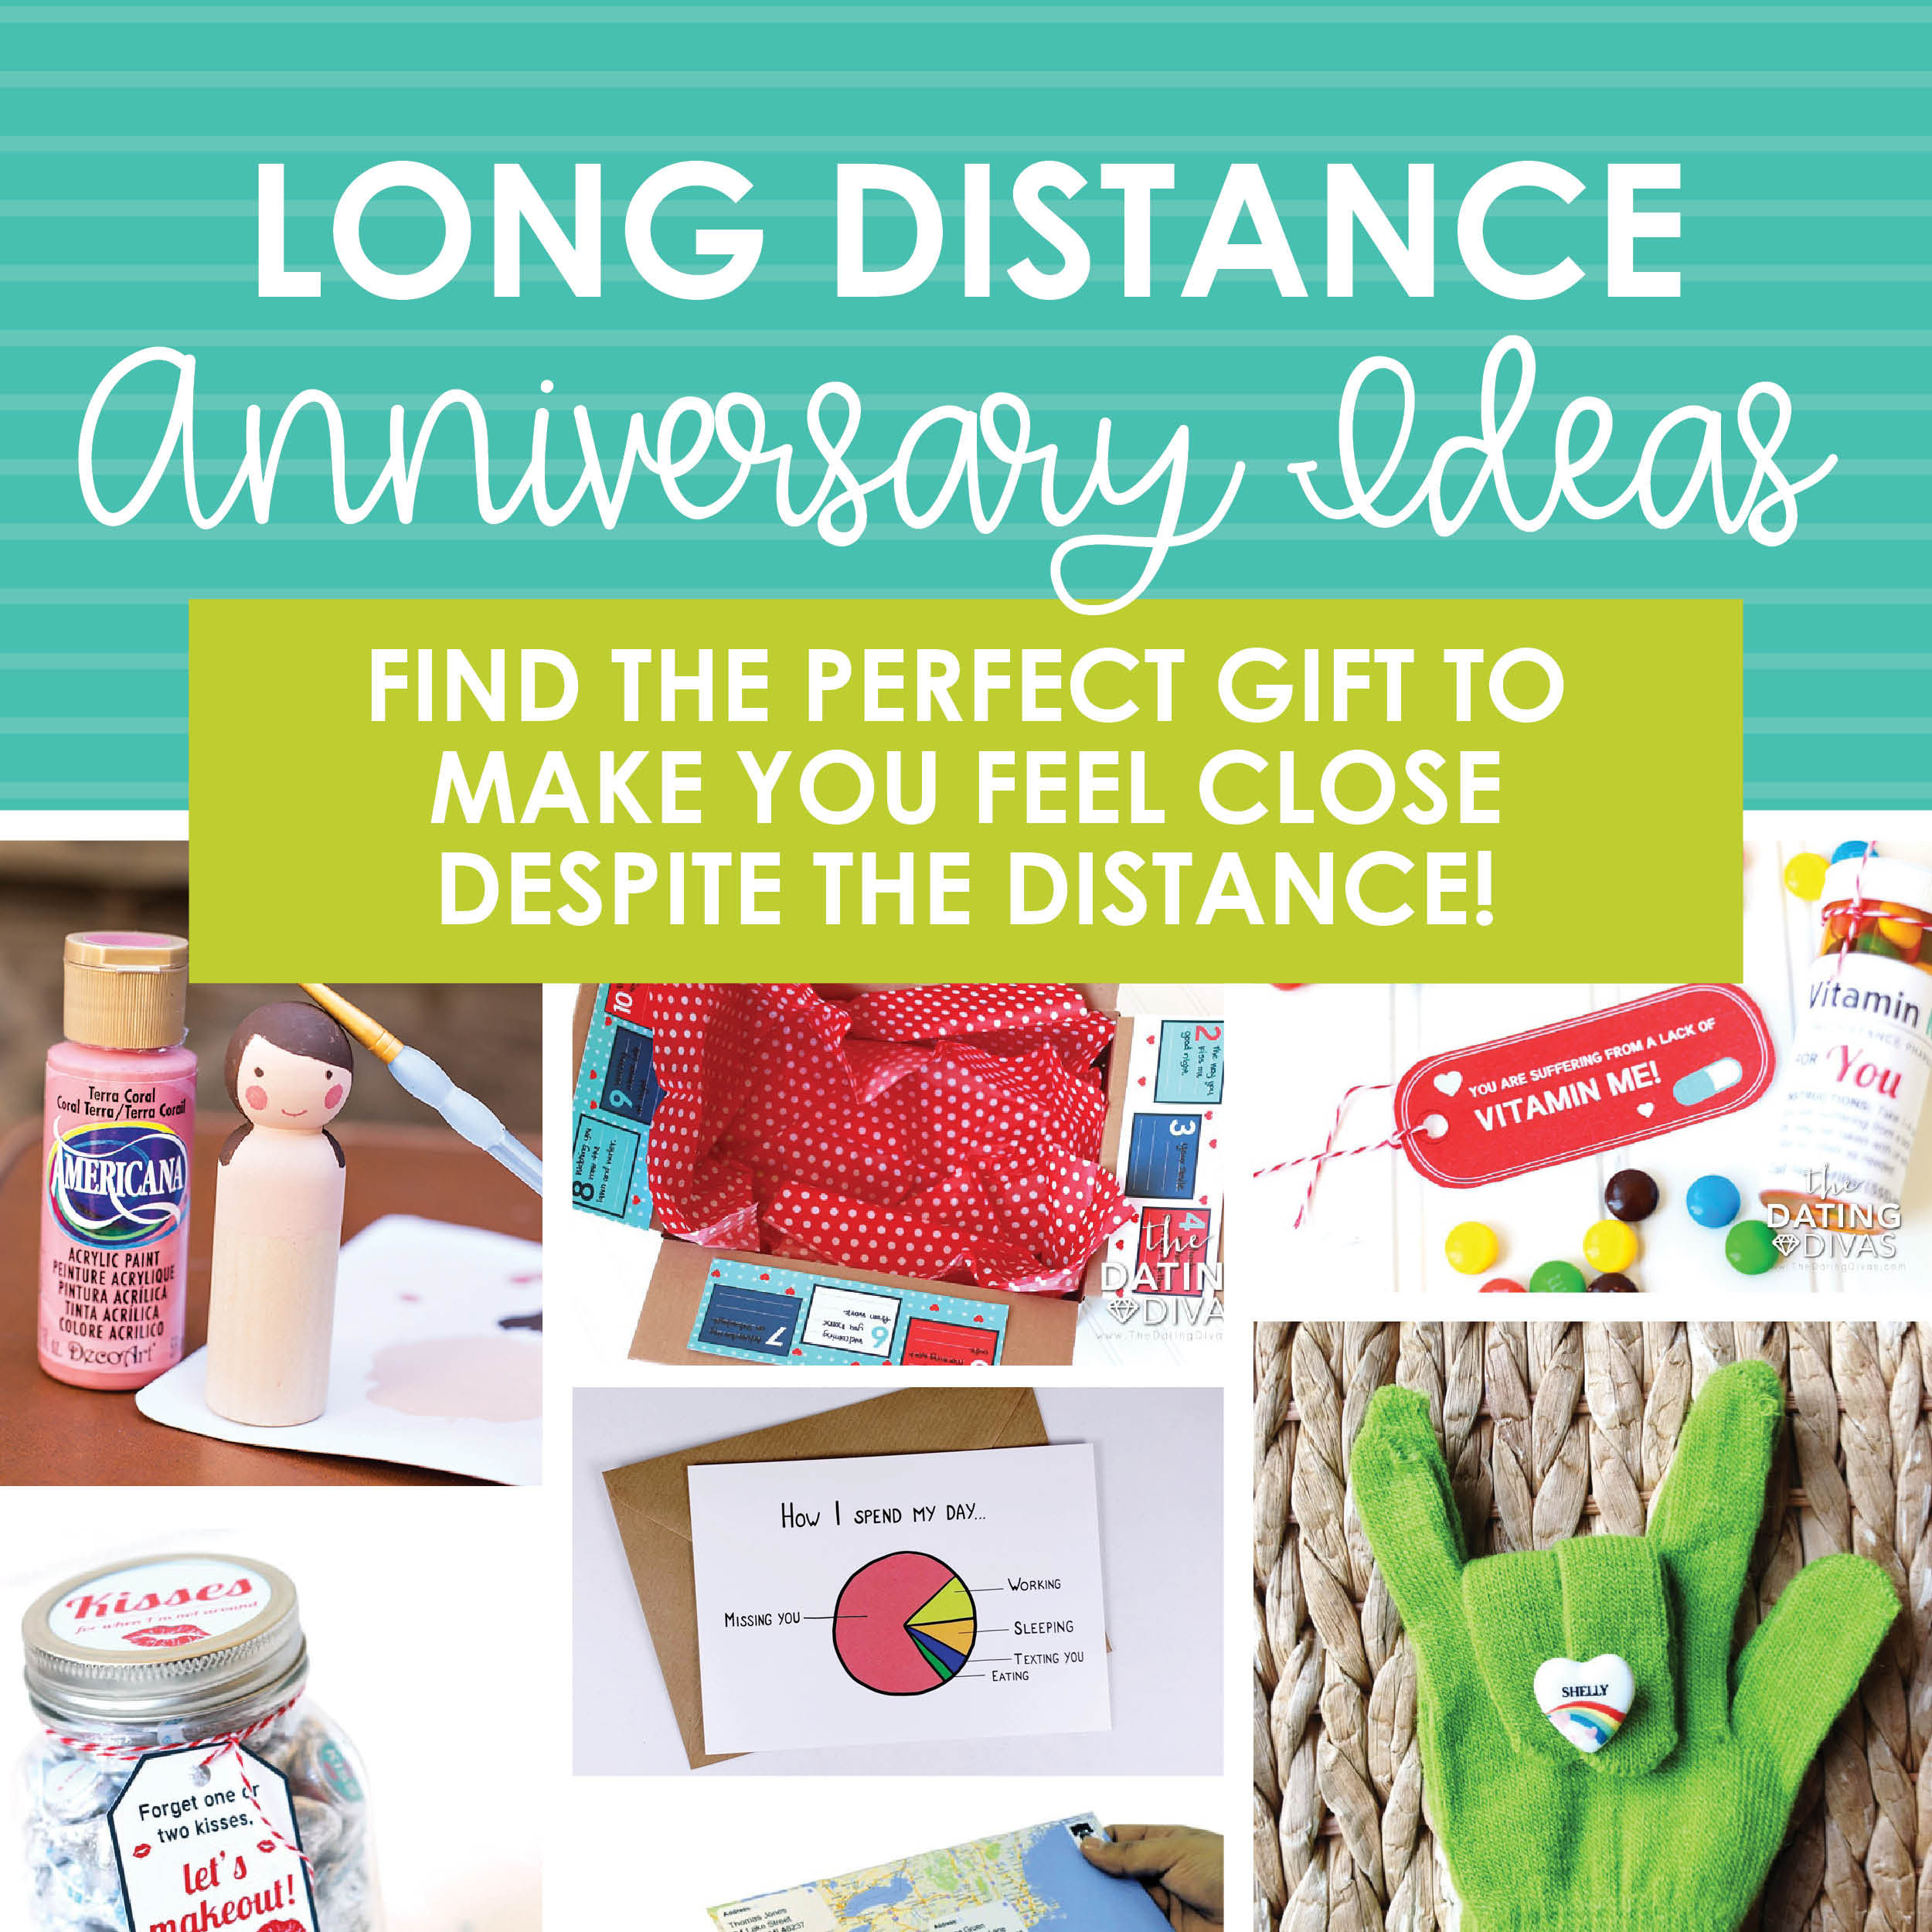 30 Celebration Tips Long Distance Anniversary Ideas The Dating Divas